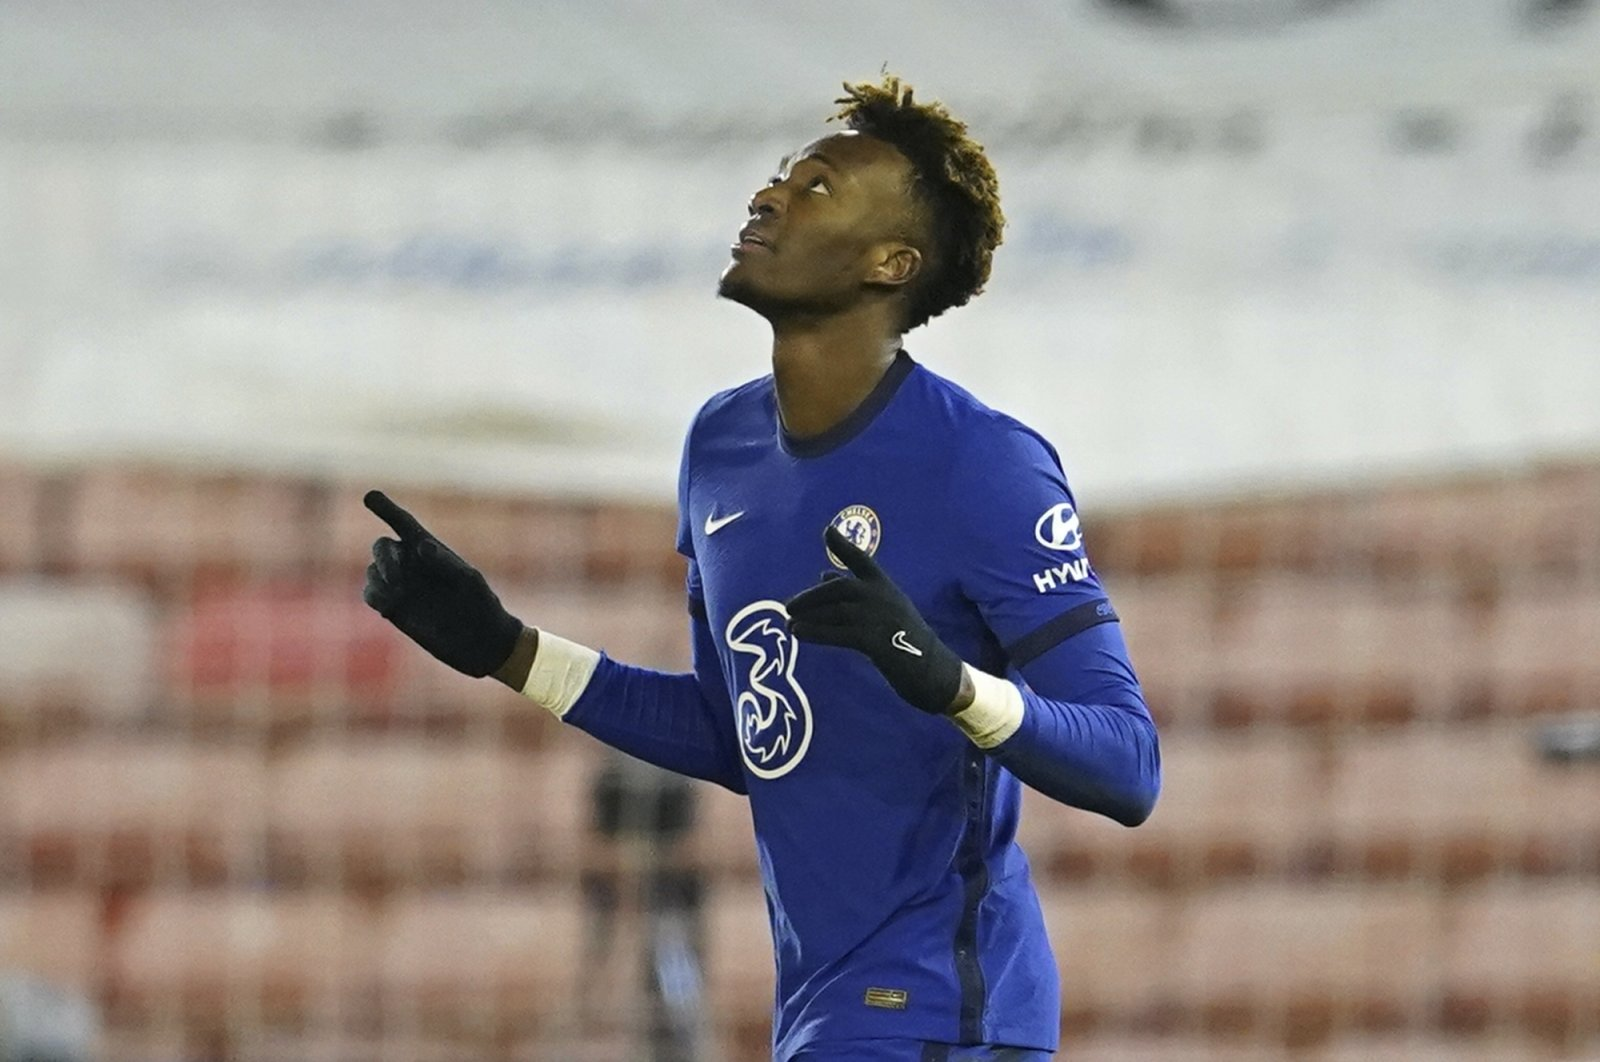 Chelsea's Tammy Abraham celebrates after scoring his side's opening goal during the English FA Cup fifth round soccer match between Barnsley and Chelsea at the Oakwell Stadium in Barnsley, England,Thursday Feb. 11, 2021. (AP Photo/Dave Thompson, Pool)